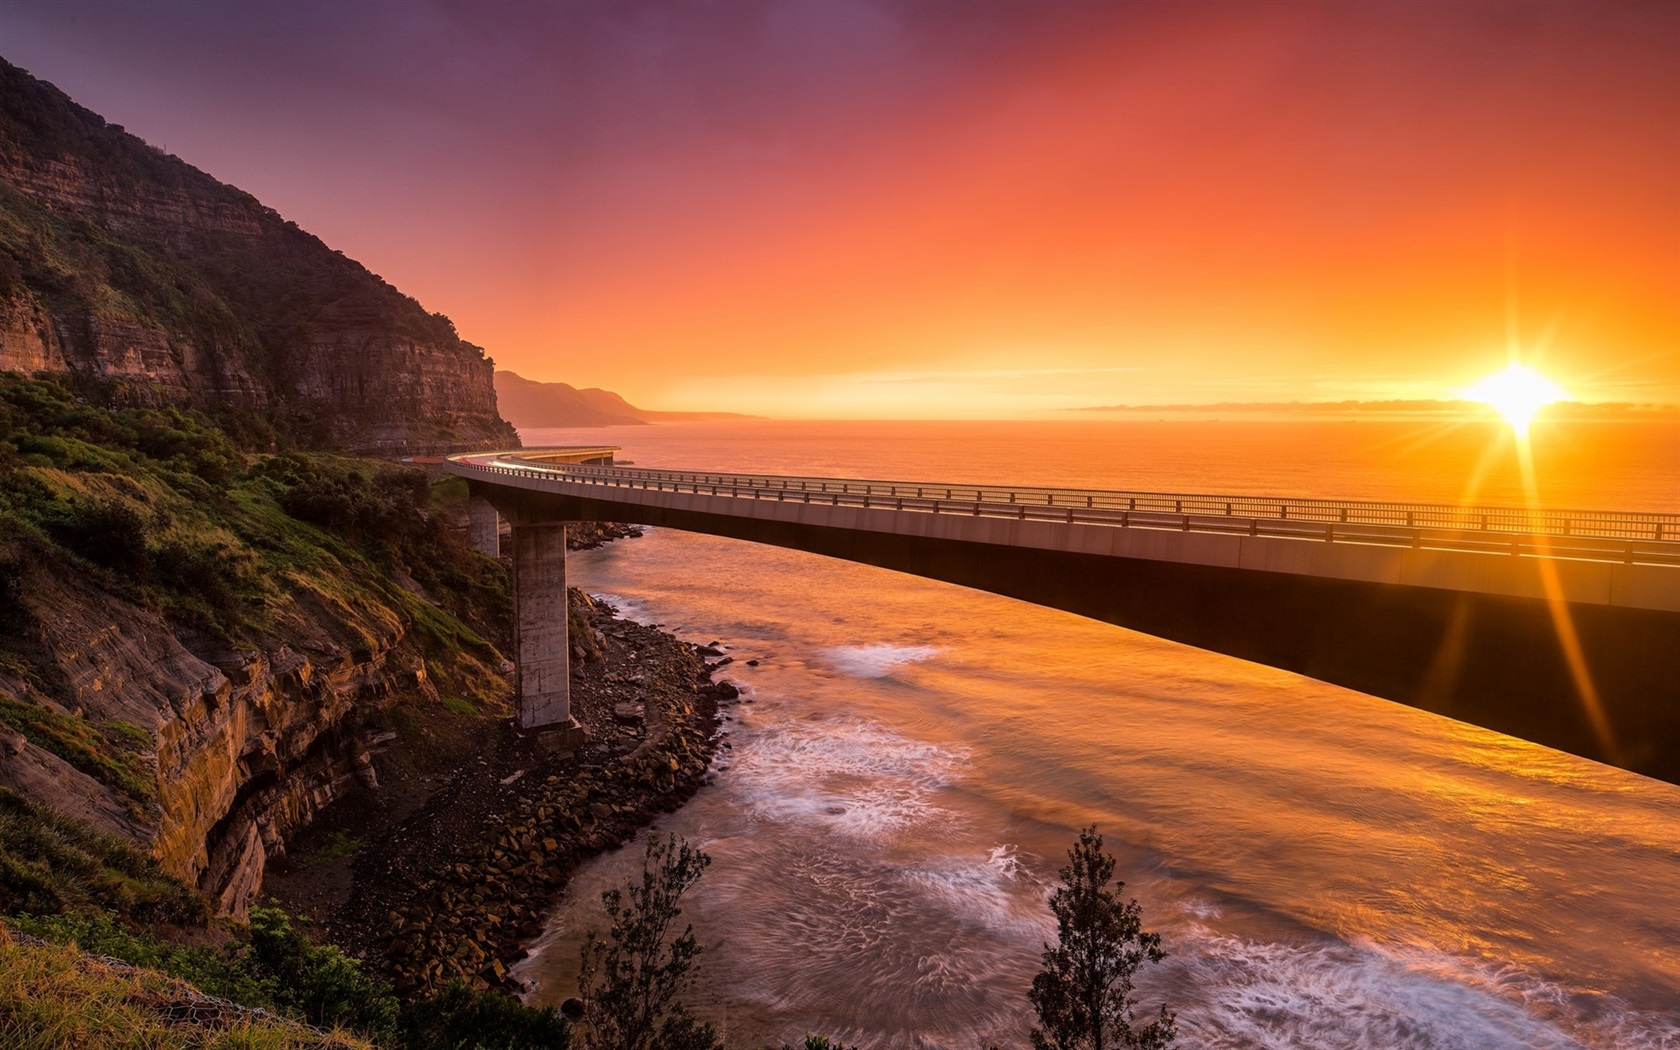 England Wallpaper Iphone 5 Sea Cliff Bridge Nsw Australien Sonnenuntergang Berge